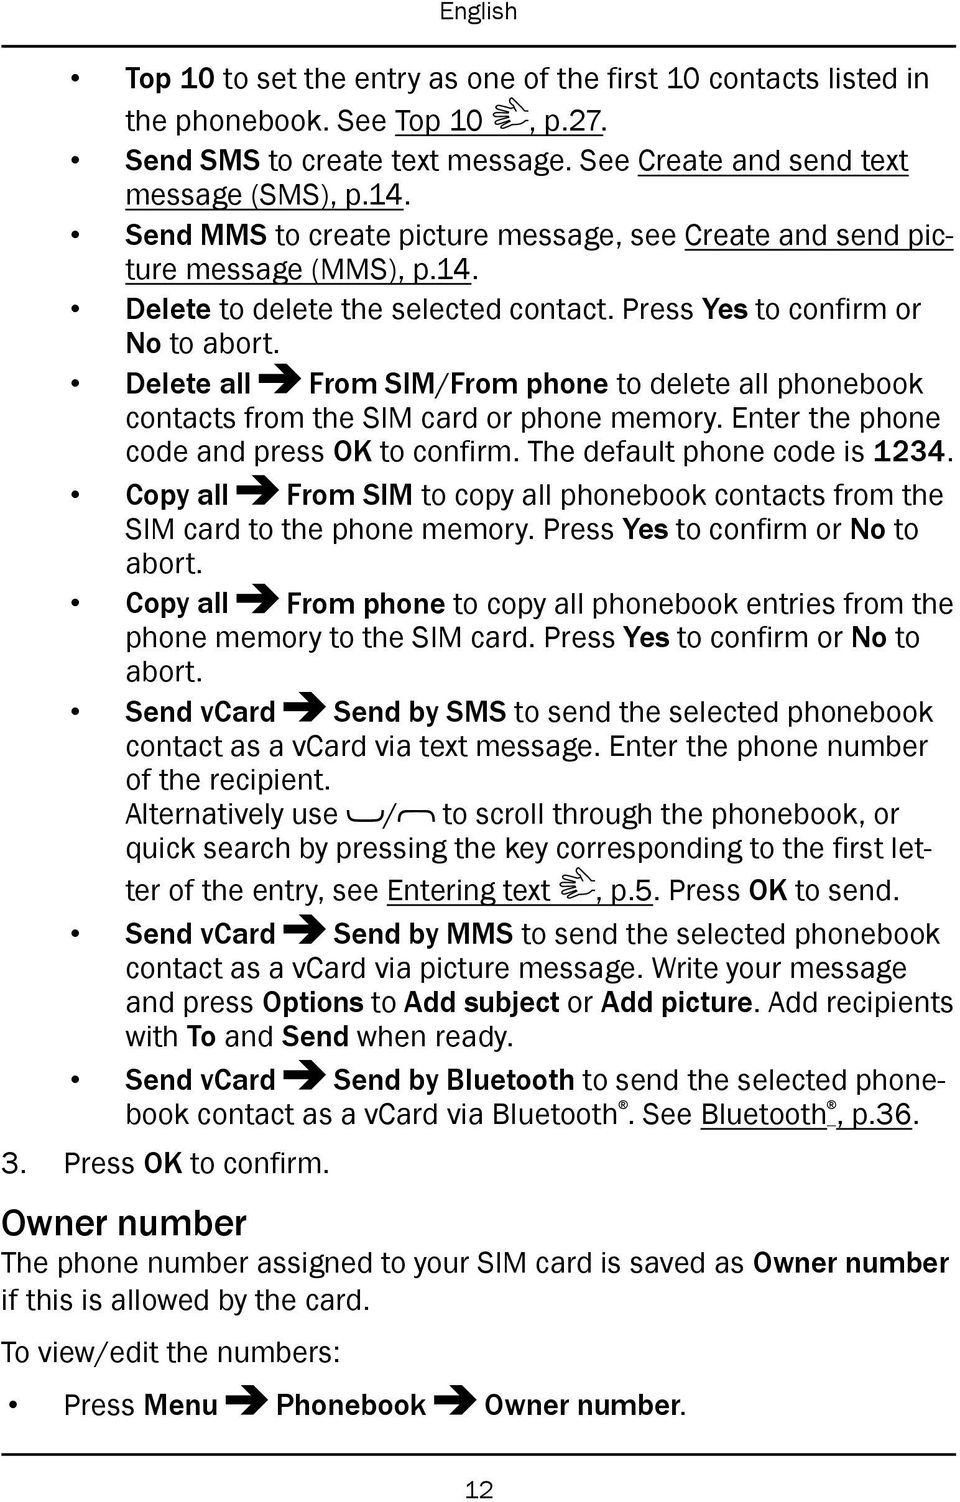 Delete all From SIM/From phone to delete all phonebook contacts from the SIM card or phone memory. Enter the phone code and press OK to confirm. The default phone code is 1234.